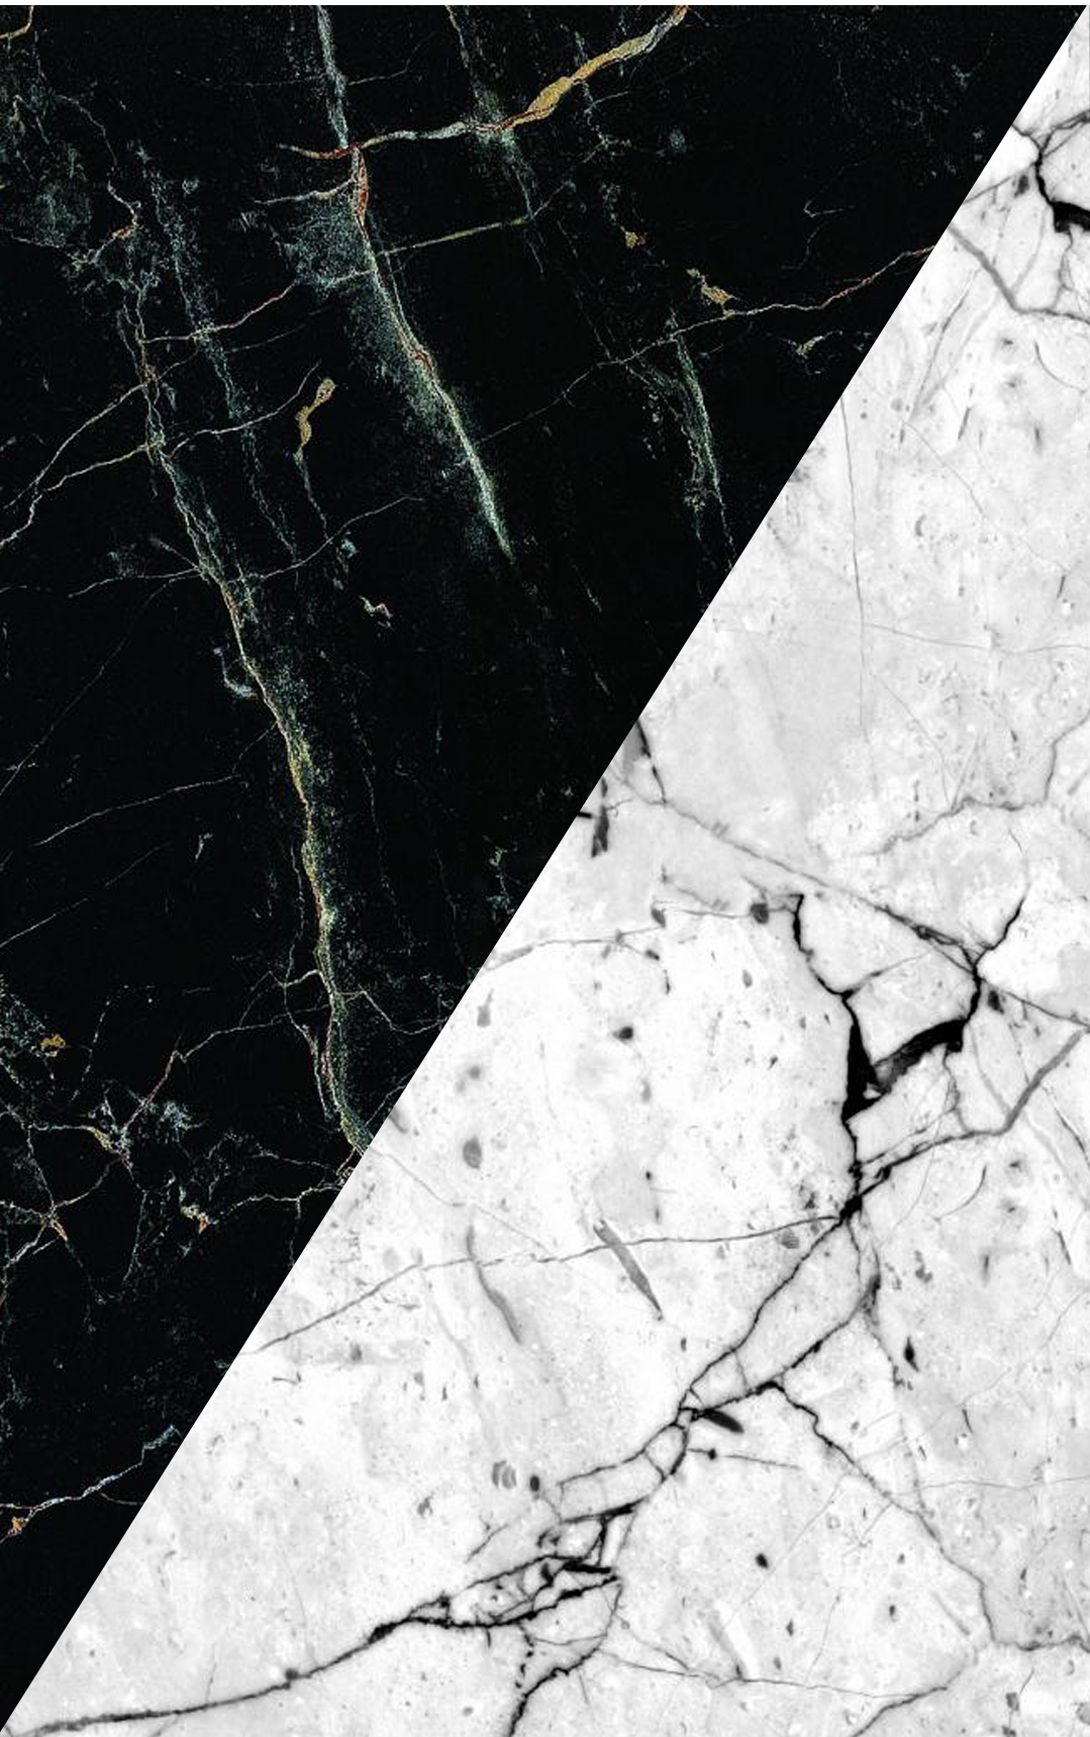 White Black Marble Iphone 6 Wallpaper Tumblr Sfondo Bianco E